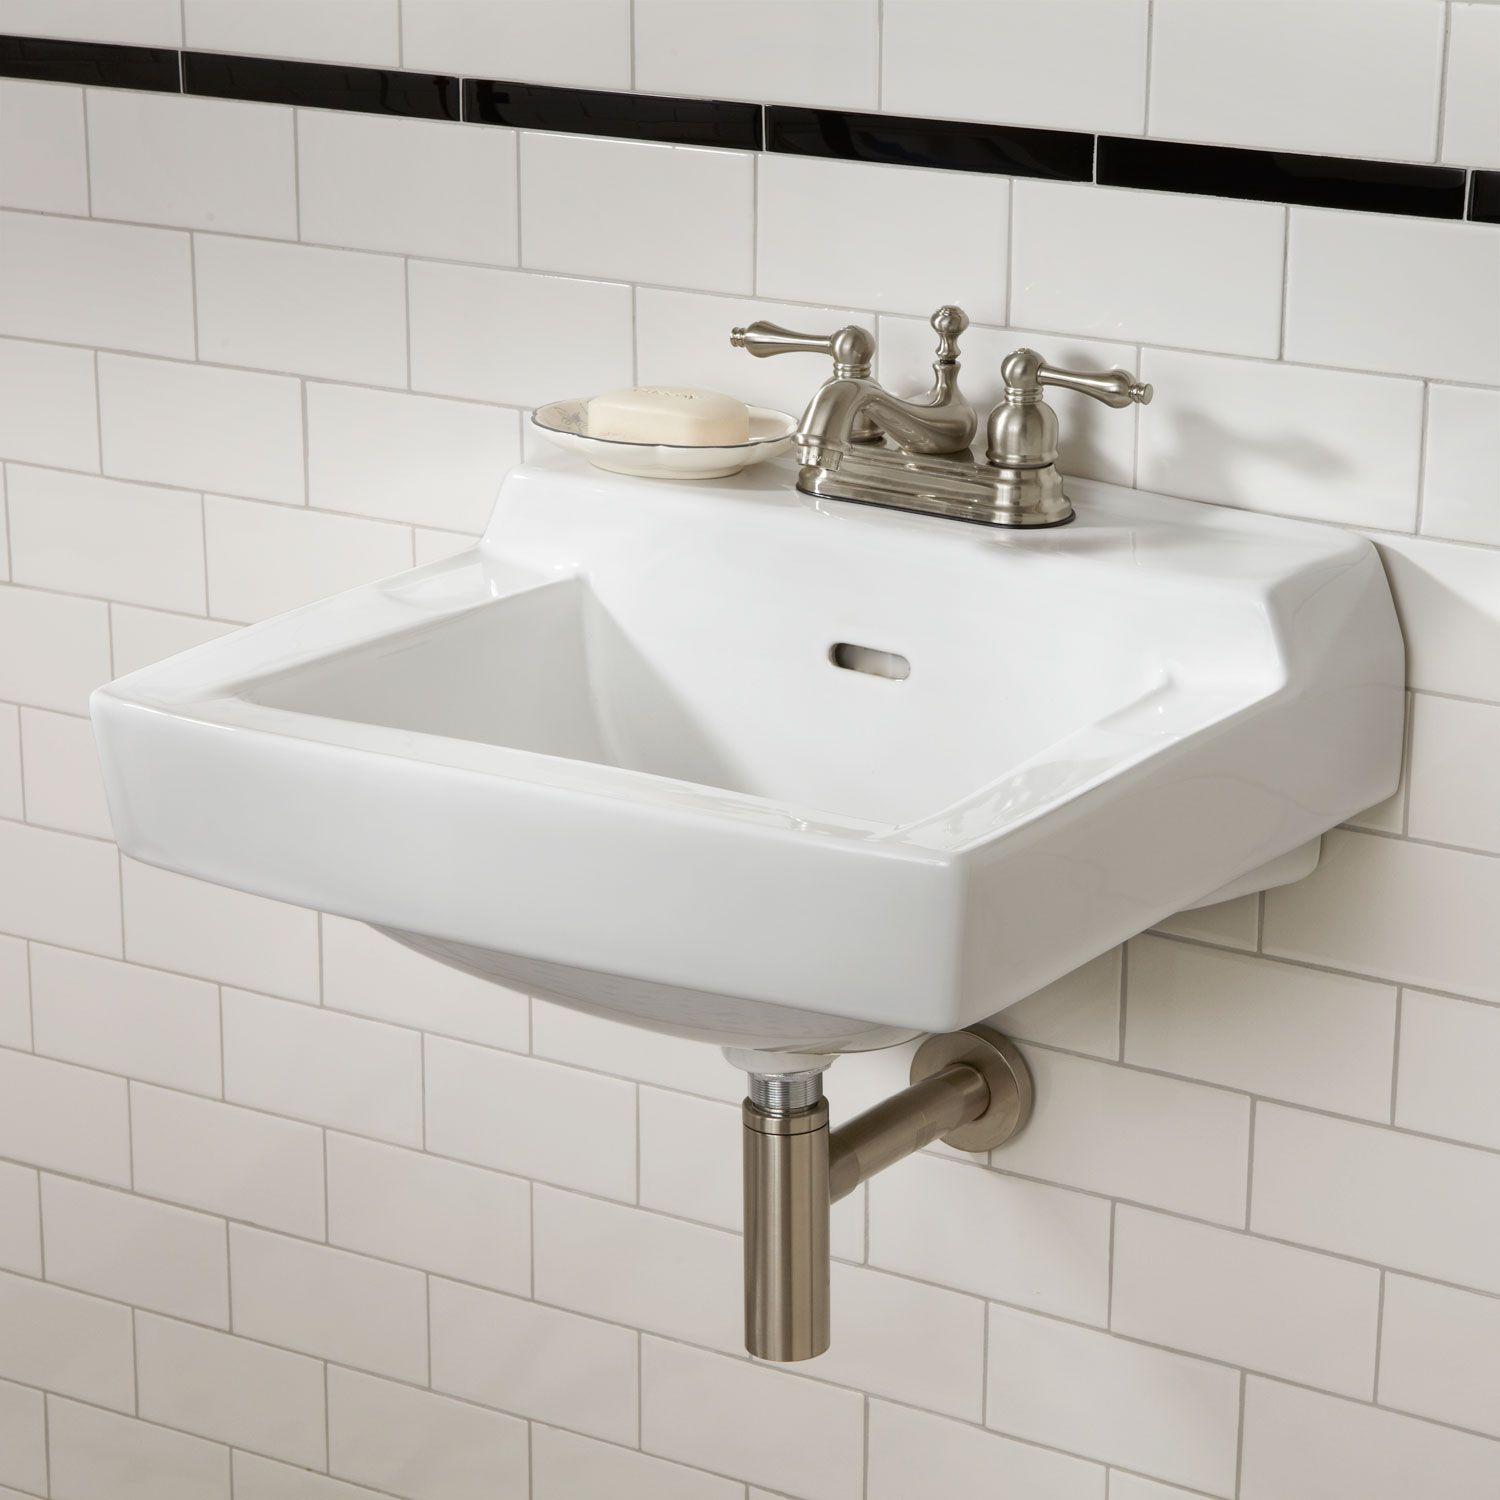 Wall Mounted Bathroom Sinks, Wall